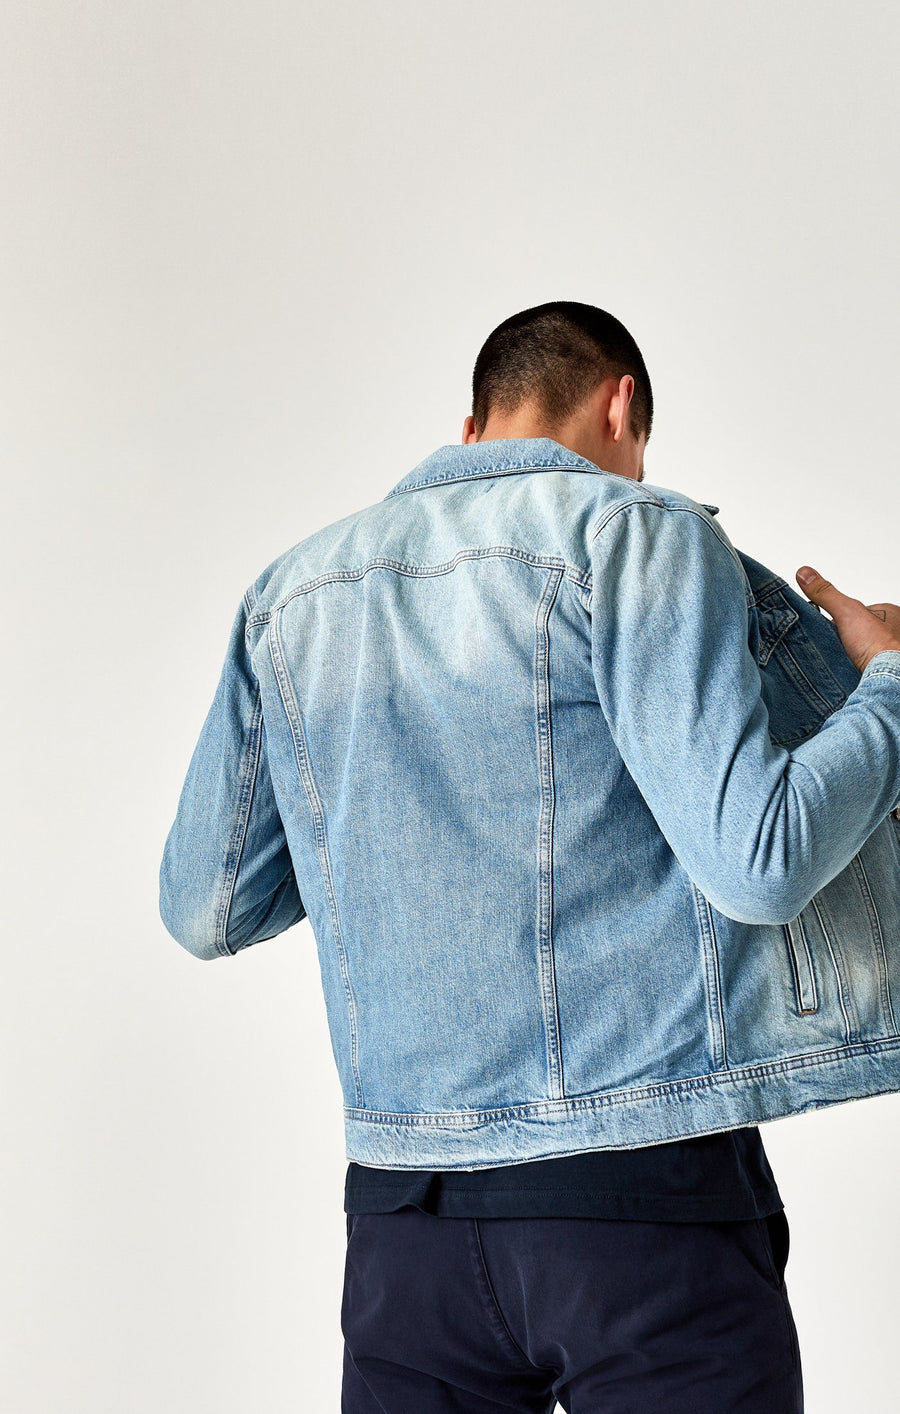 FRANK JACKET IN BLEACH VINTAGE RIGID - Mavi Jeans